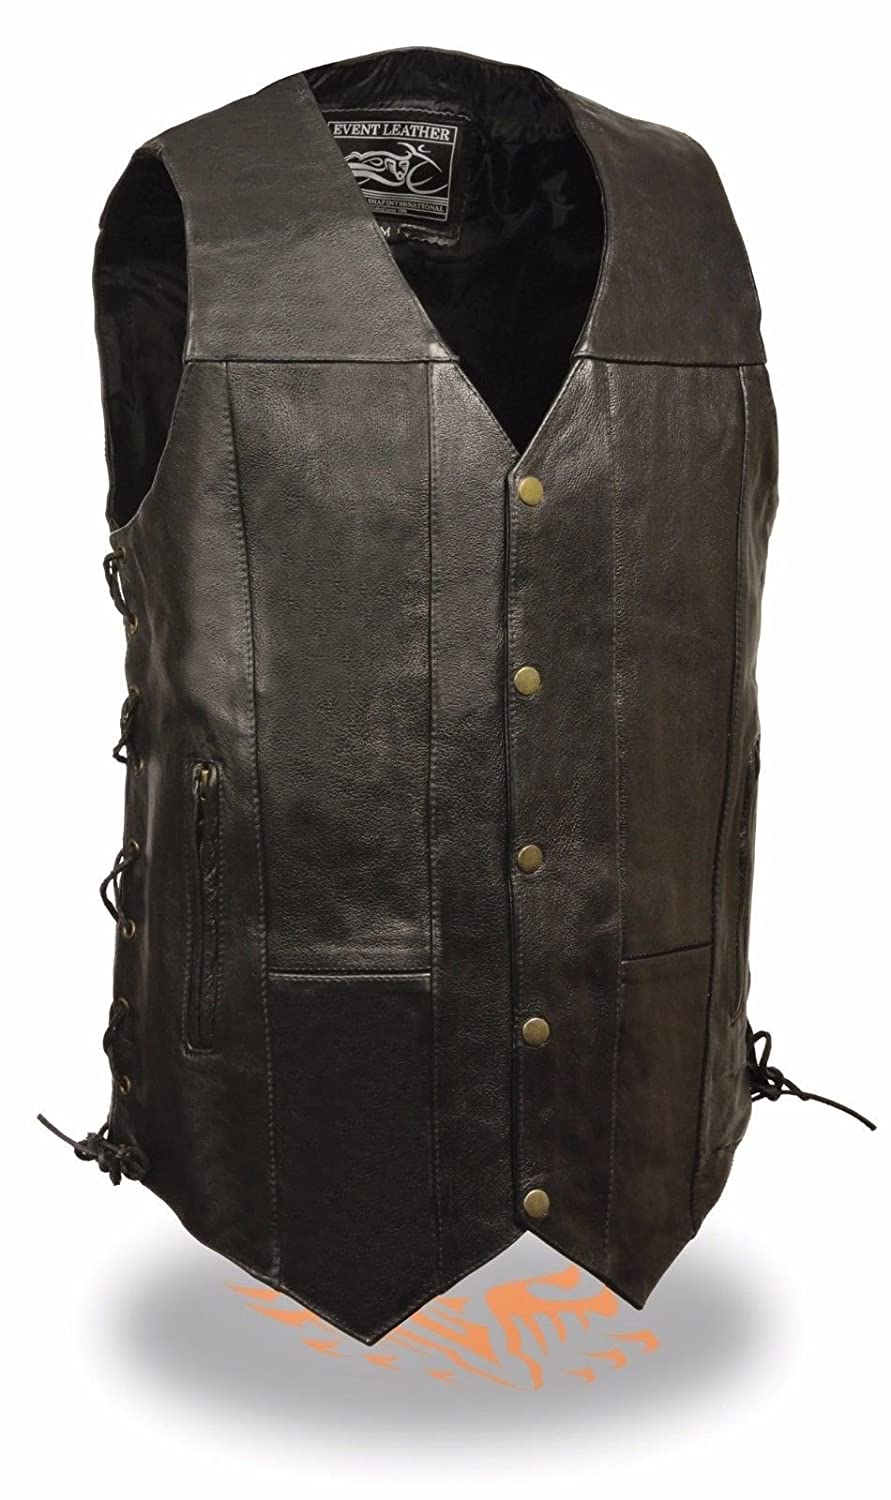 MEN'S TALL LENGTH MOTORCYCLE 10 POCKETS 3' LONGER BIKERS LEATHER VEST W/ LACES (L Regular) ShafInc EL5391TLL